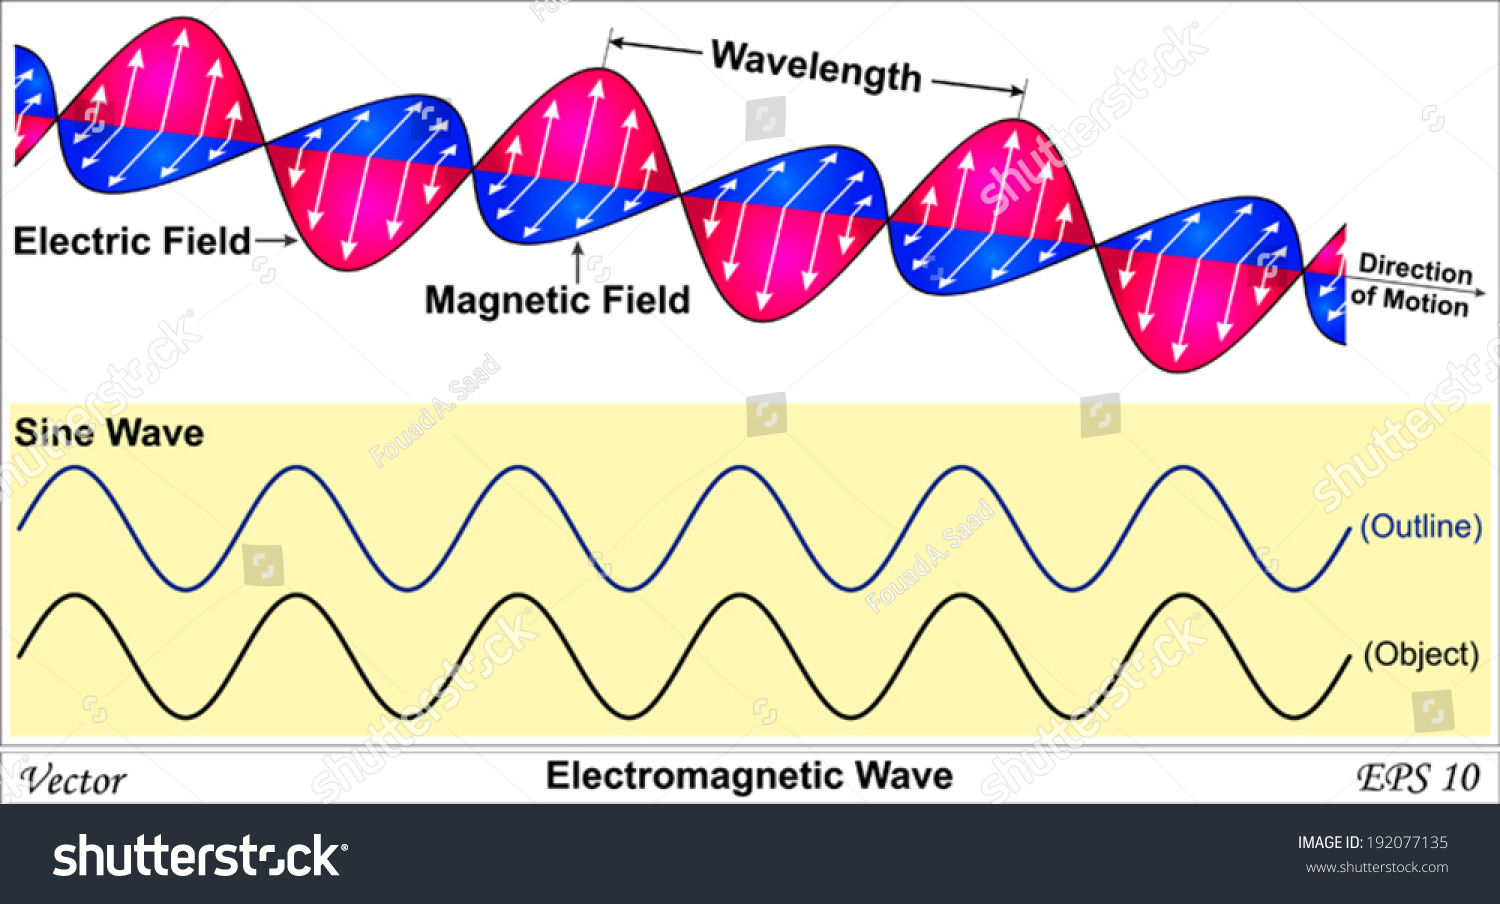 Electromagnetic Wave Stock Vector Royalty Free 192077135 Radio Waves Diagram The Basic Shape Of Shutterstock